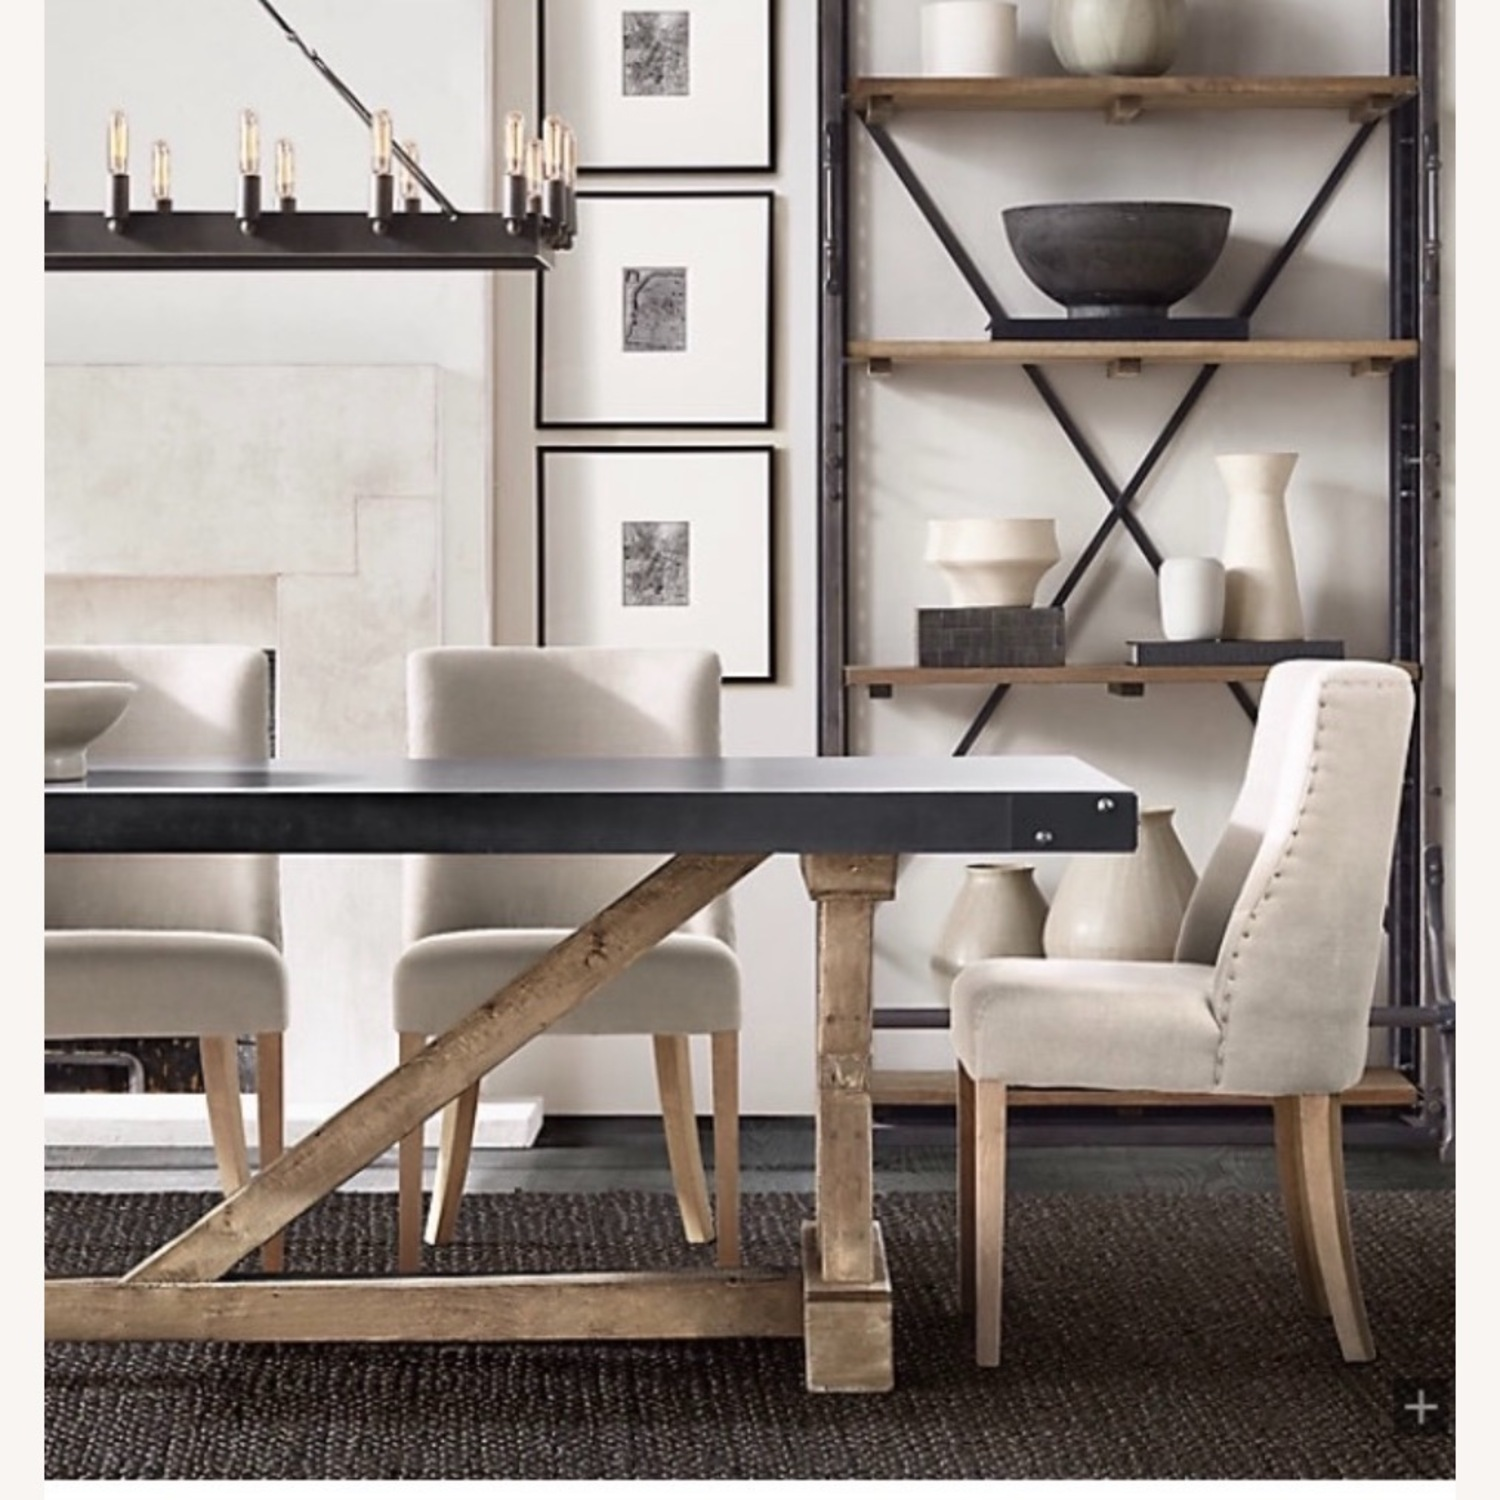 Restoration Hardware Salvaged Wood and Concrete Dining Table - image-15